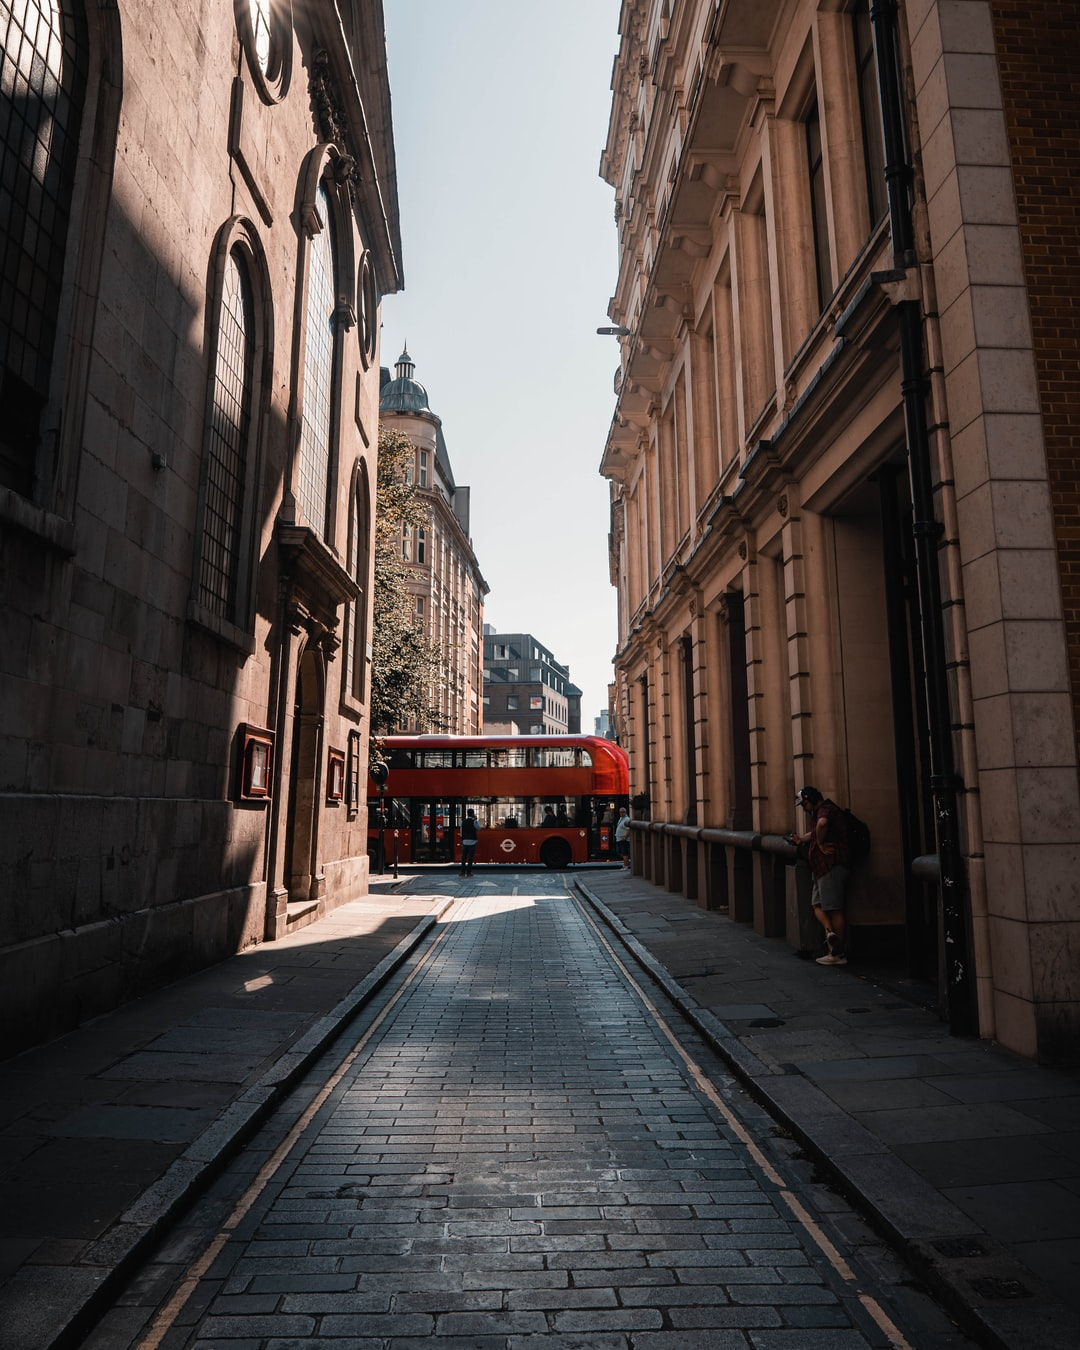 red bus in between of brown concrete buildings during daytime